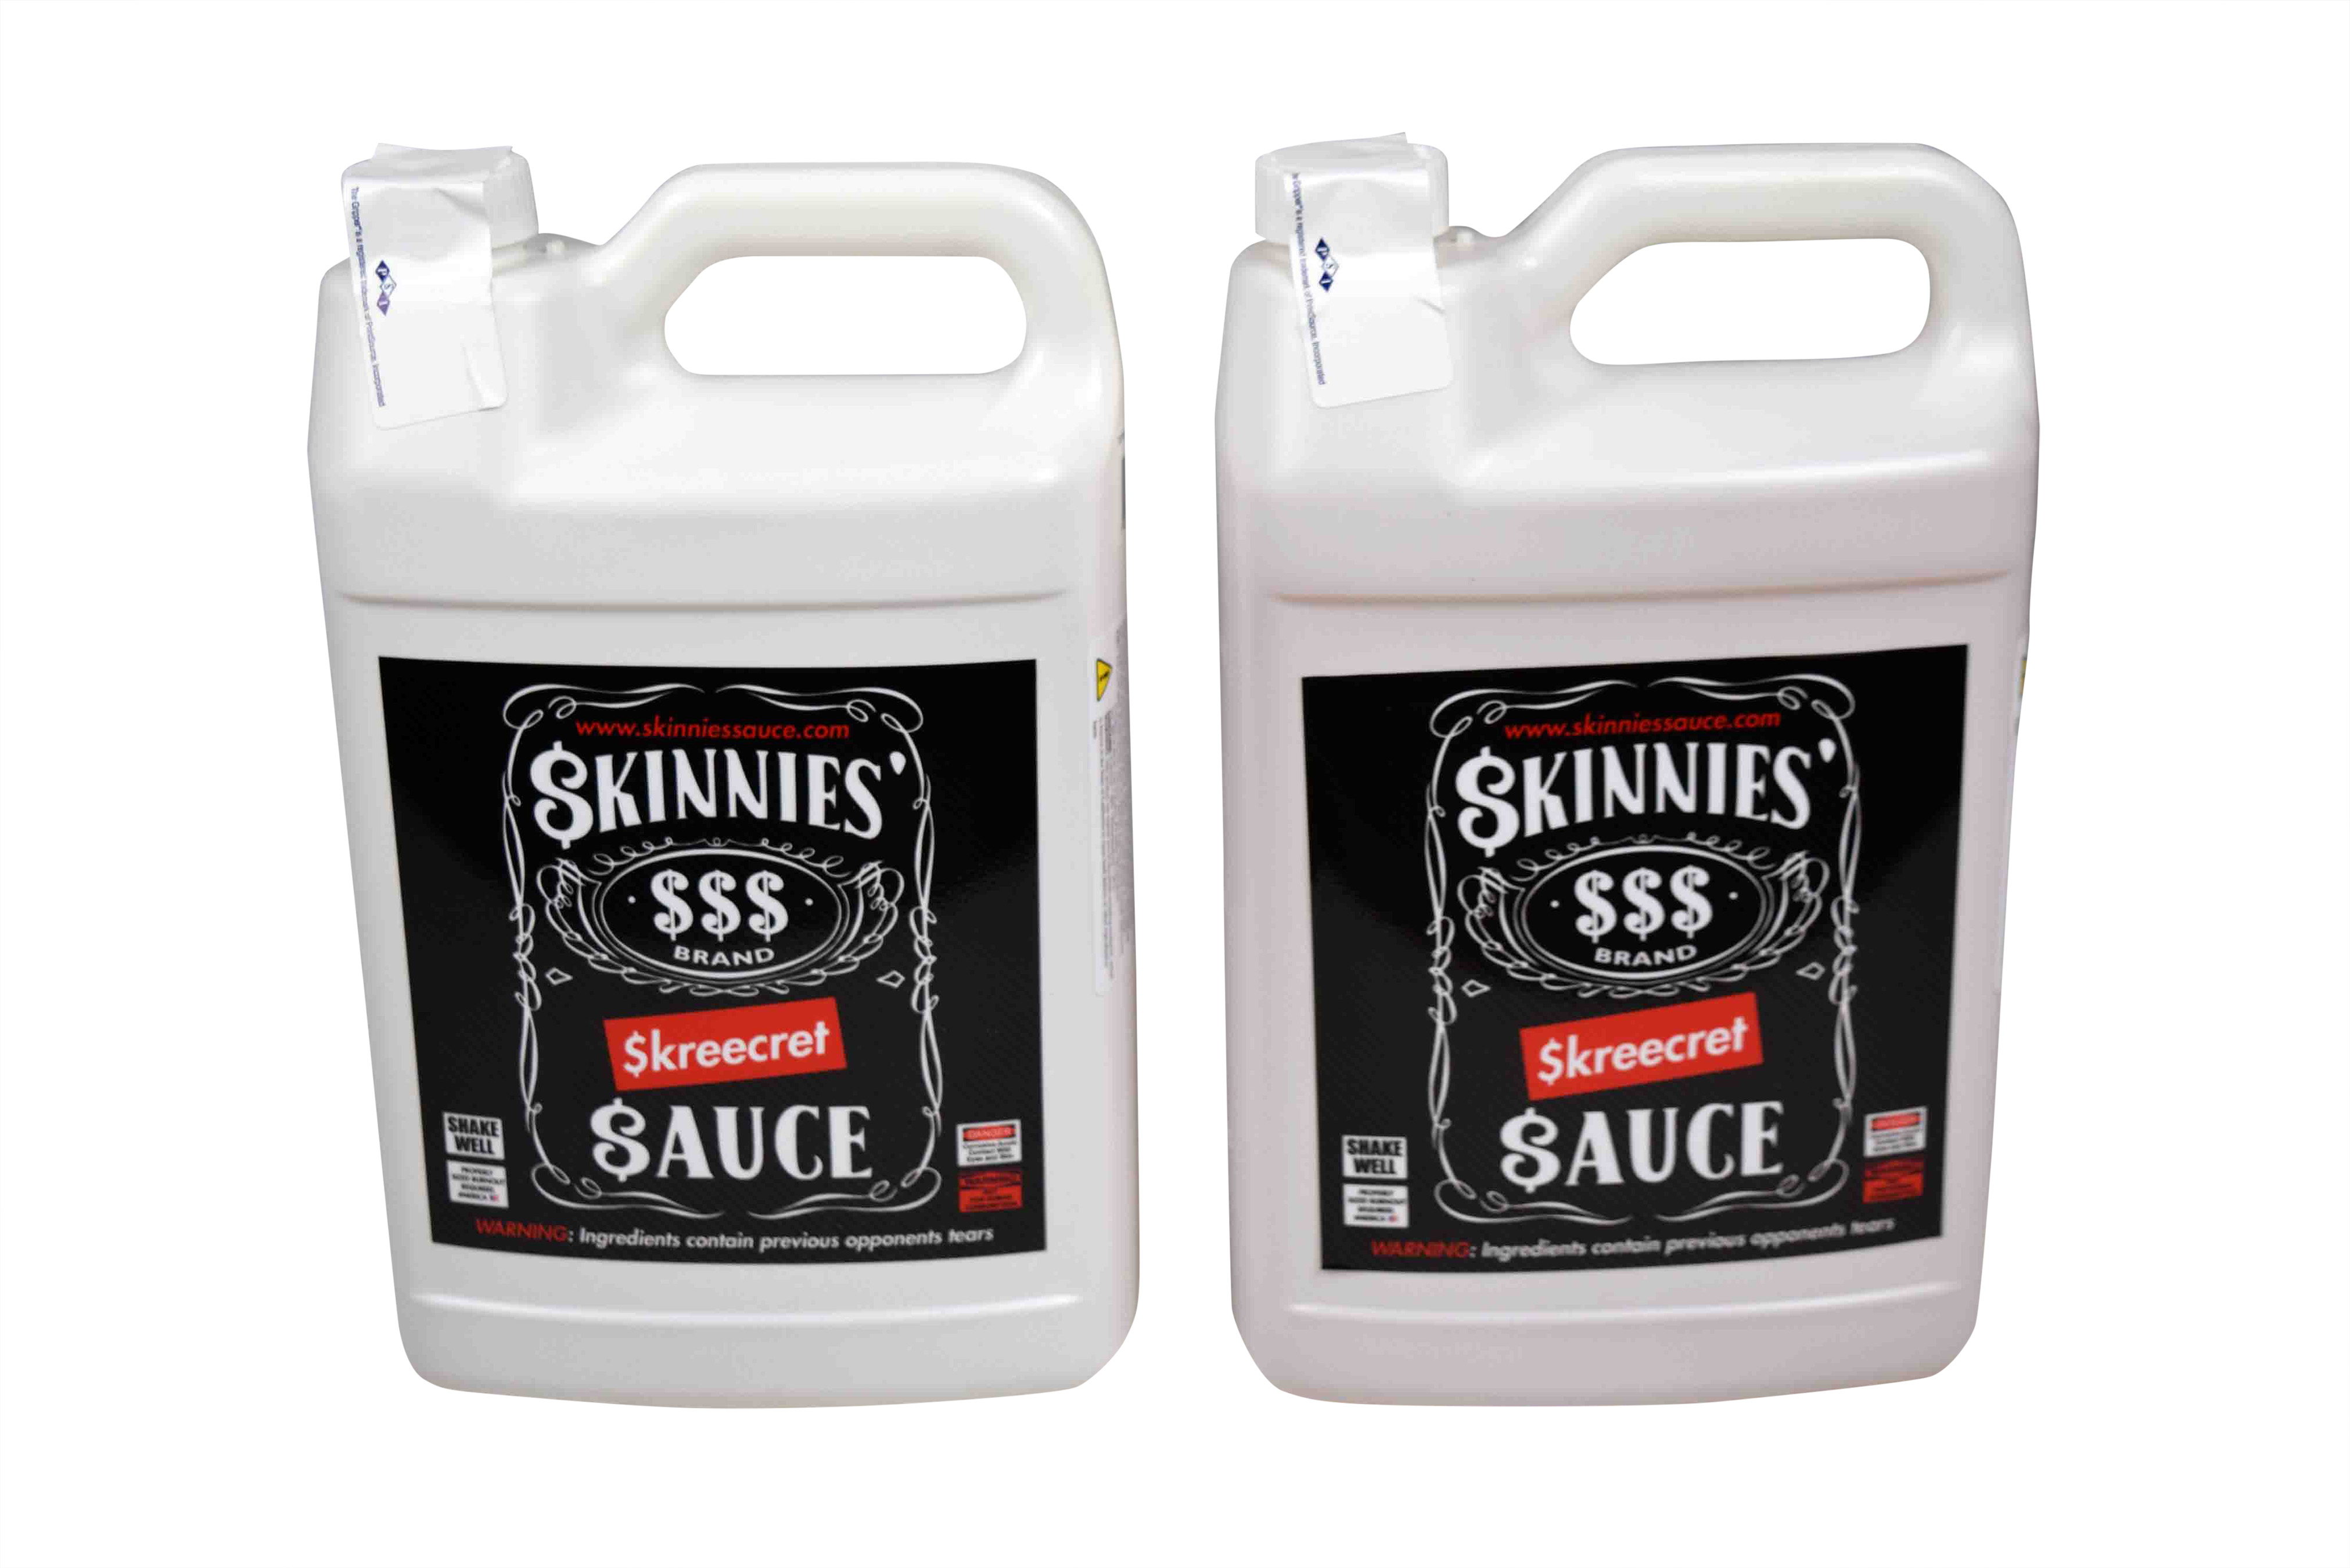 Made-in-USA-Skinnies-Skreecret-Sauce-No-Prep-Traction-2-Pack-image-1